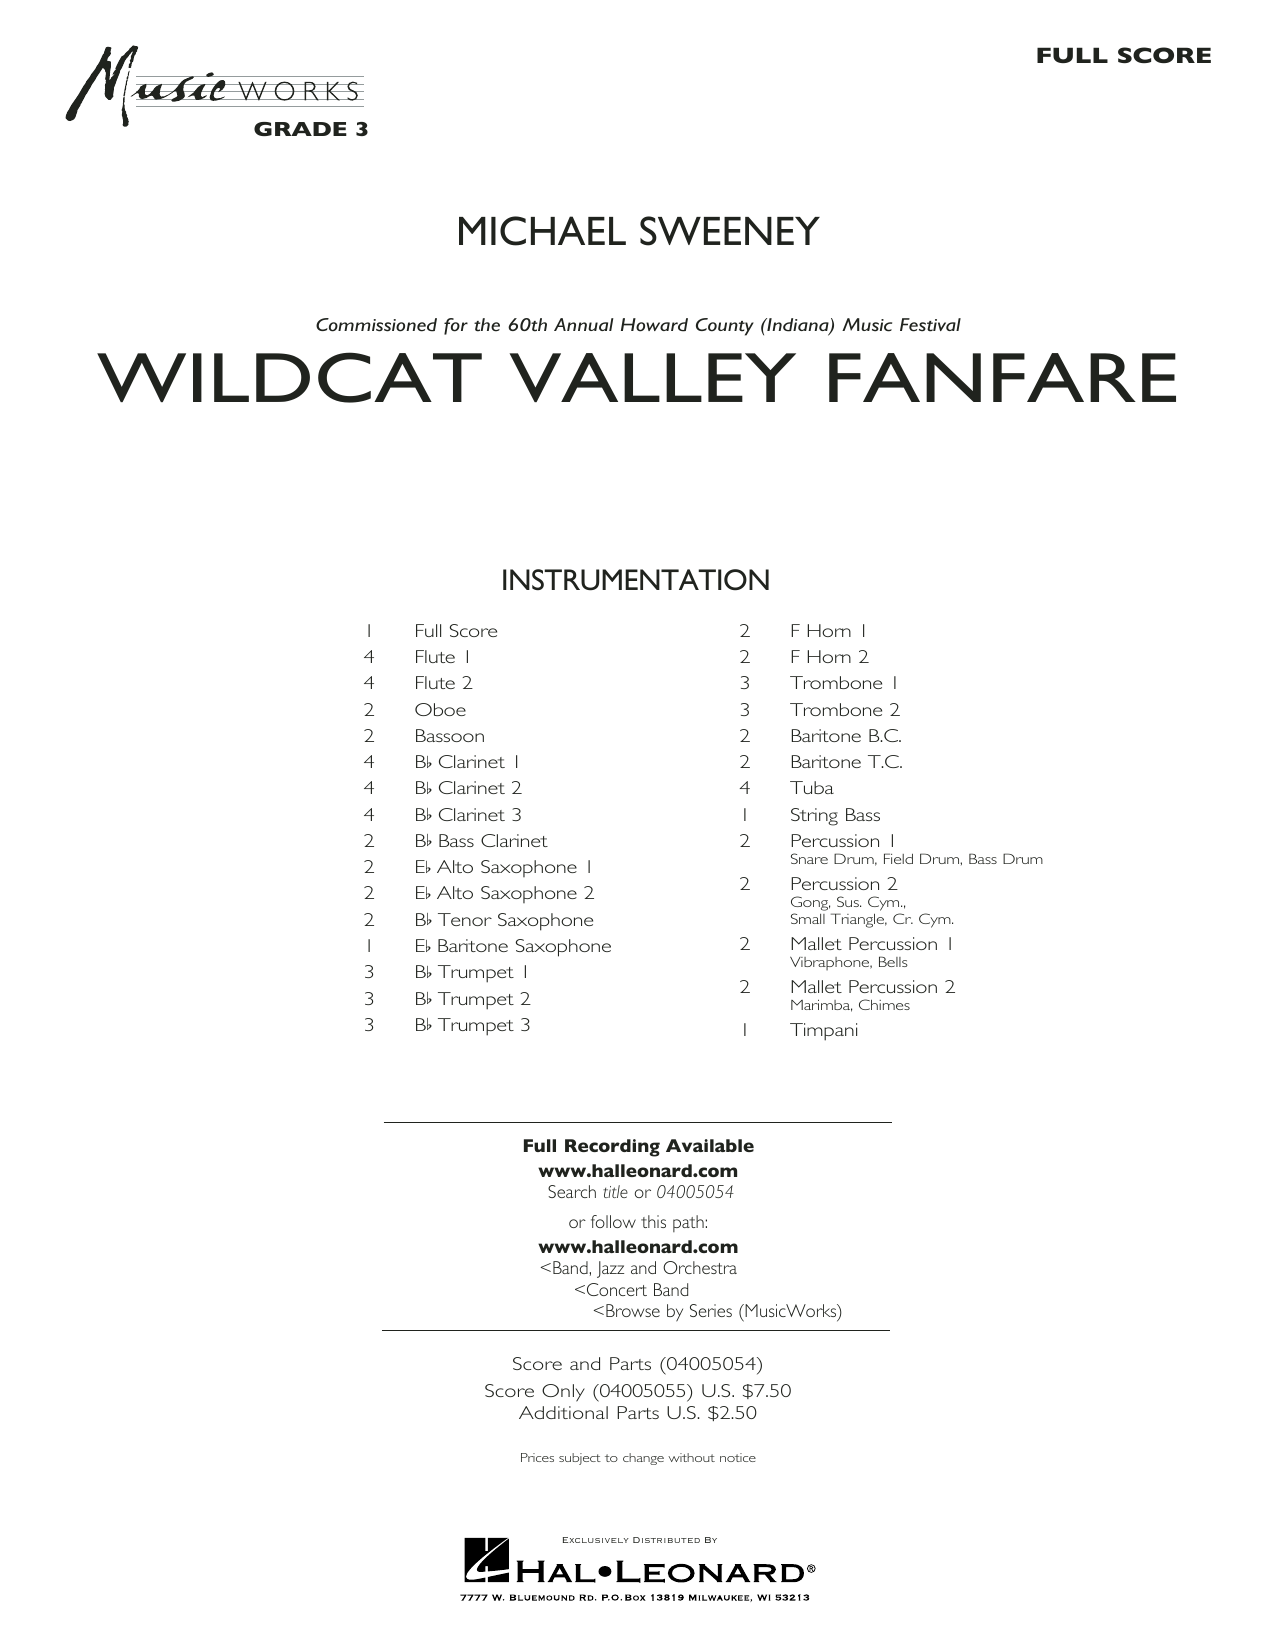 Michael Sweeney Wildcat Valley Fanfare - Conductor Score (Full Score) sheet music notes and chords. Download Printable PDF.